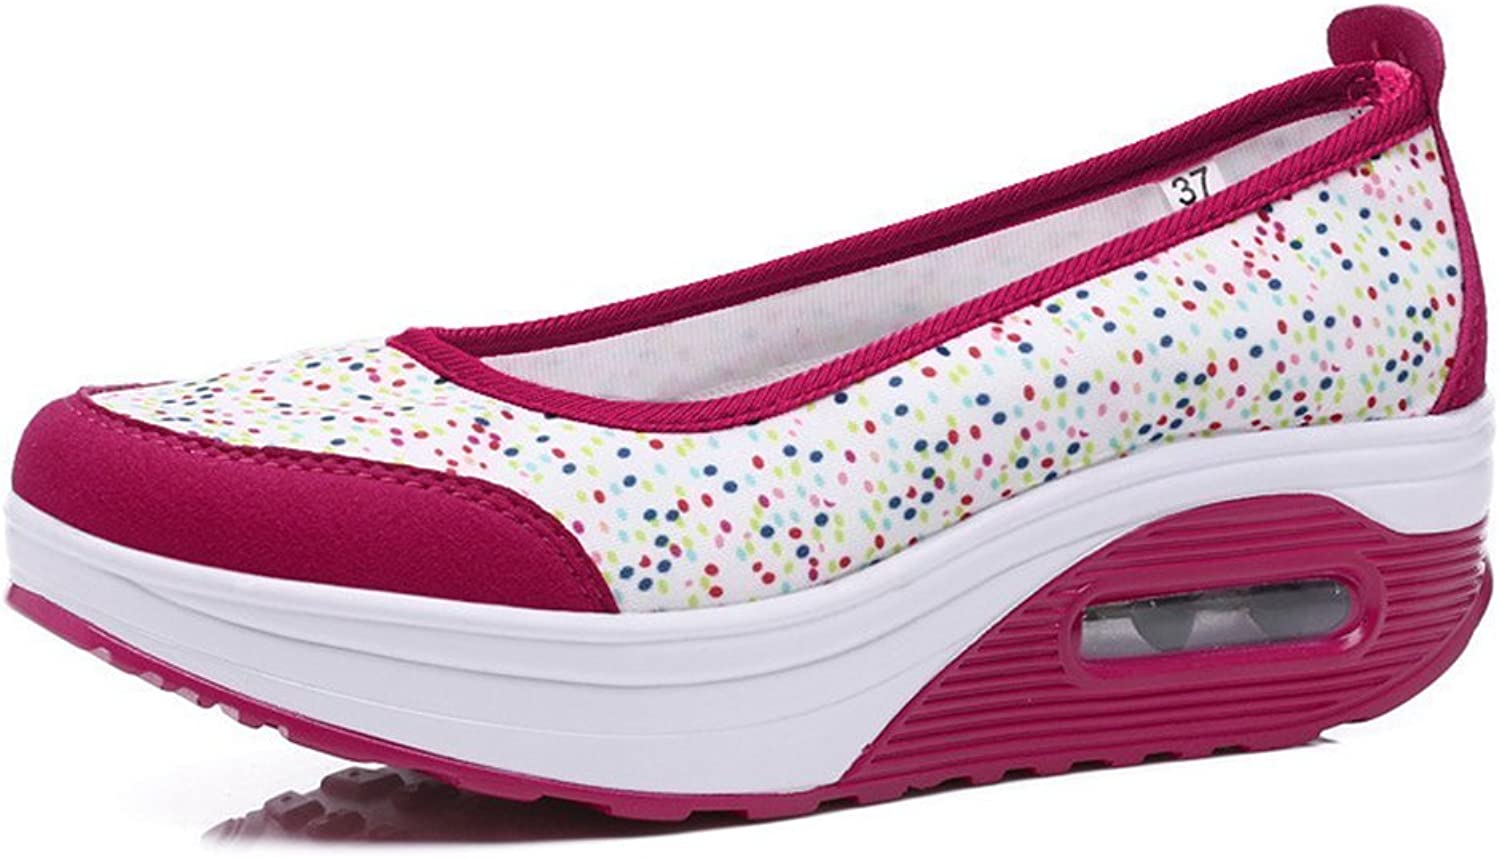 BeautyOriginal Women's Toning Slip-on Casual Walking shoes Athletic Lightweight Sneaker